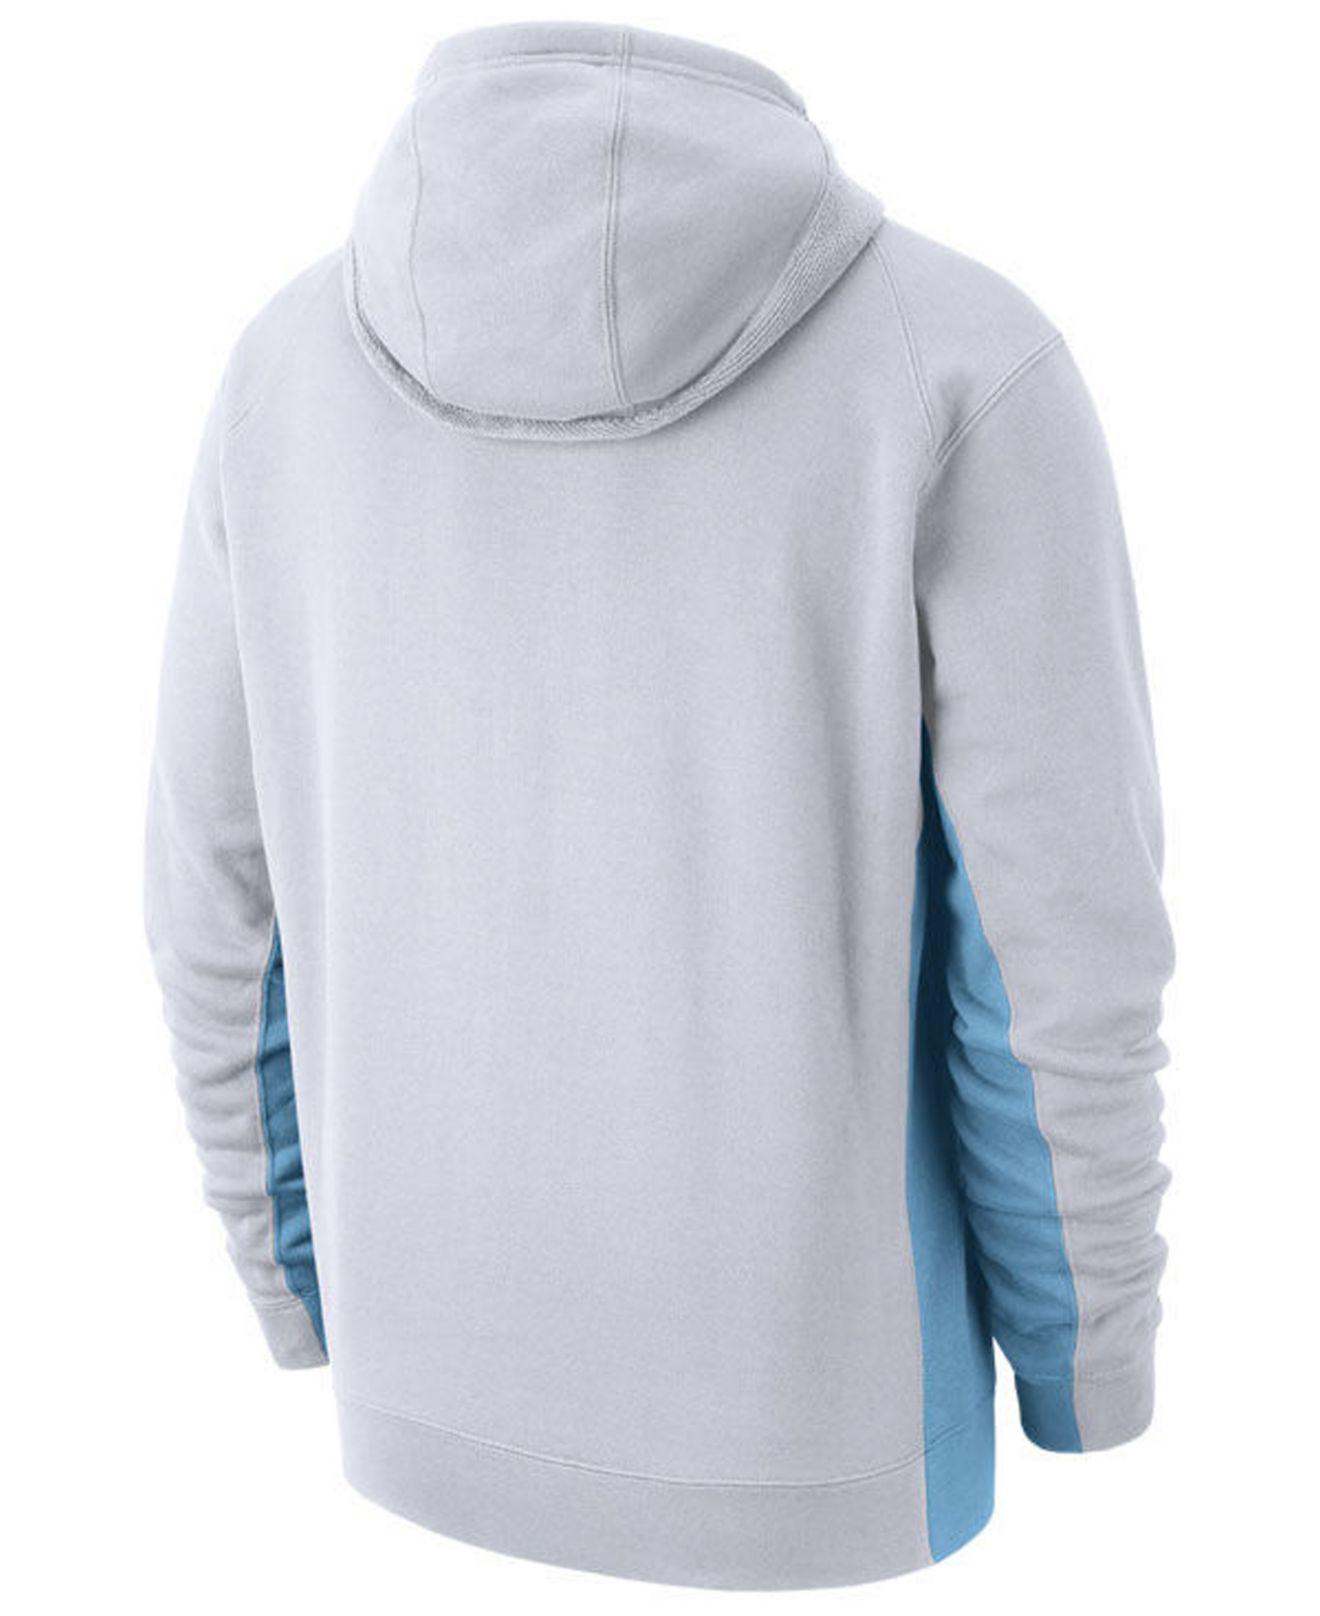 743f66873ed Lyst - Nike Miami Heat Earned Edition Courtside Hoodie in White for Men